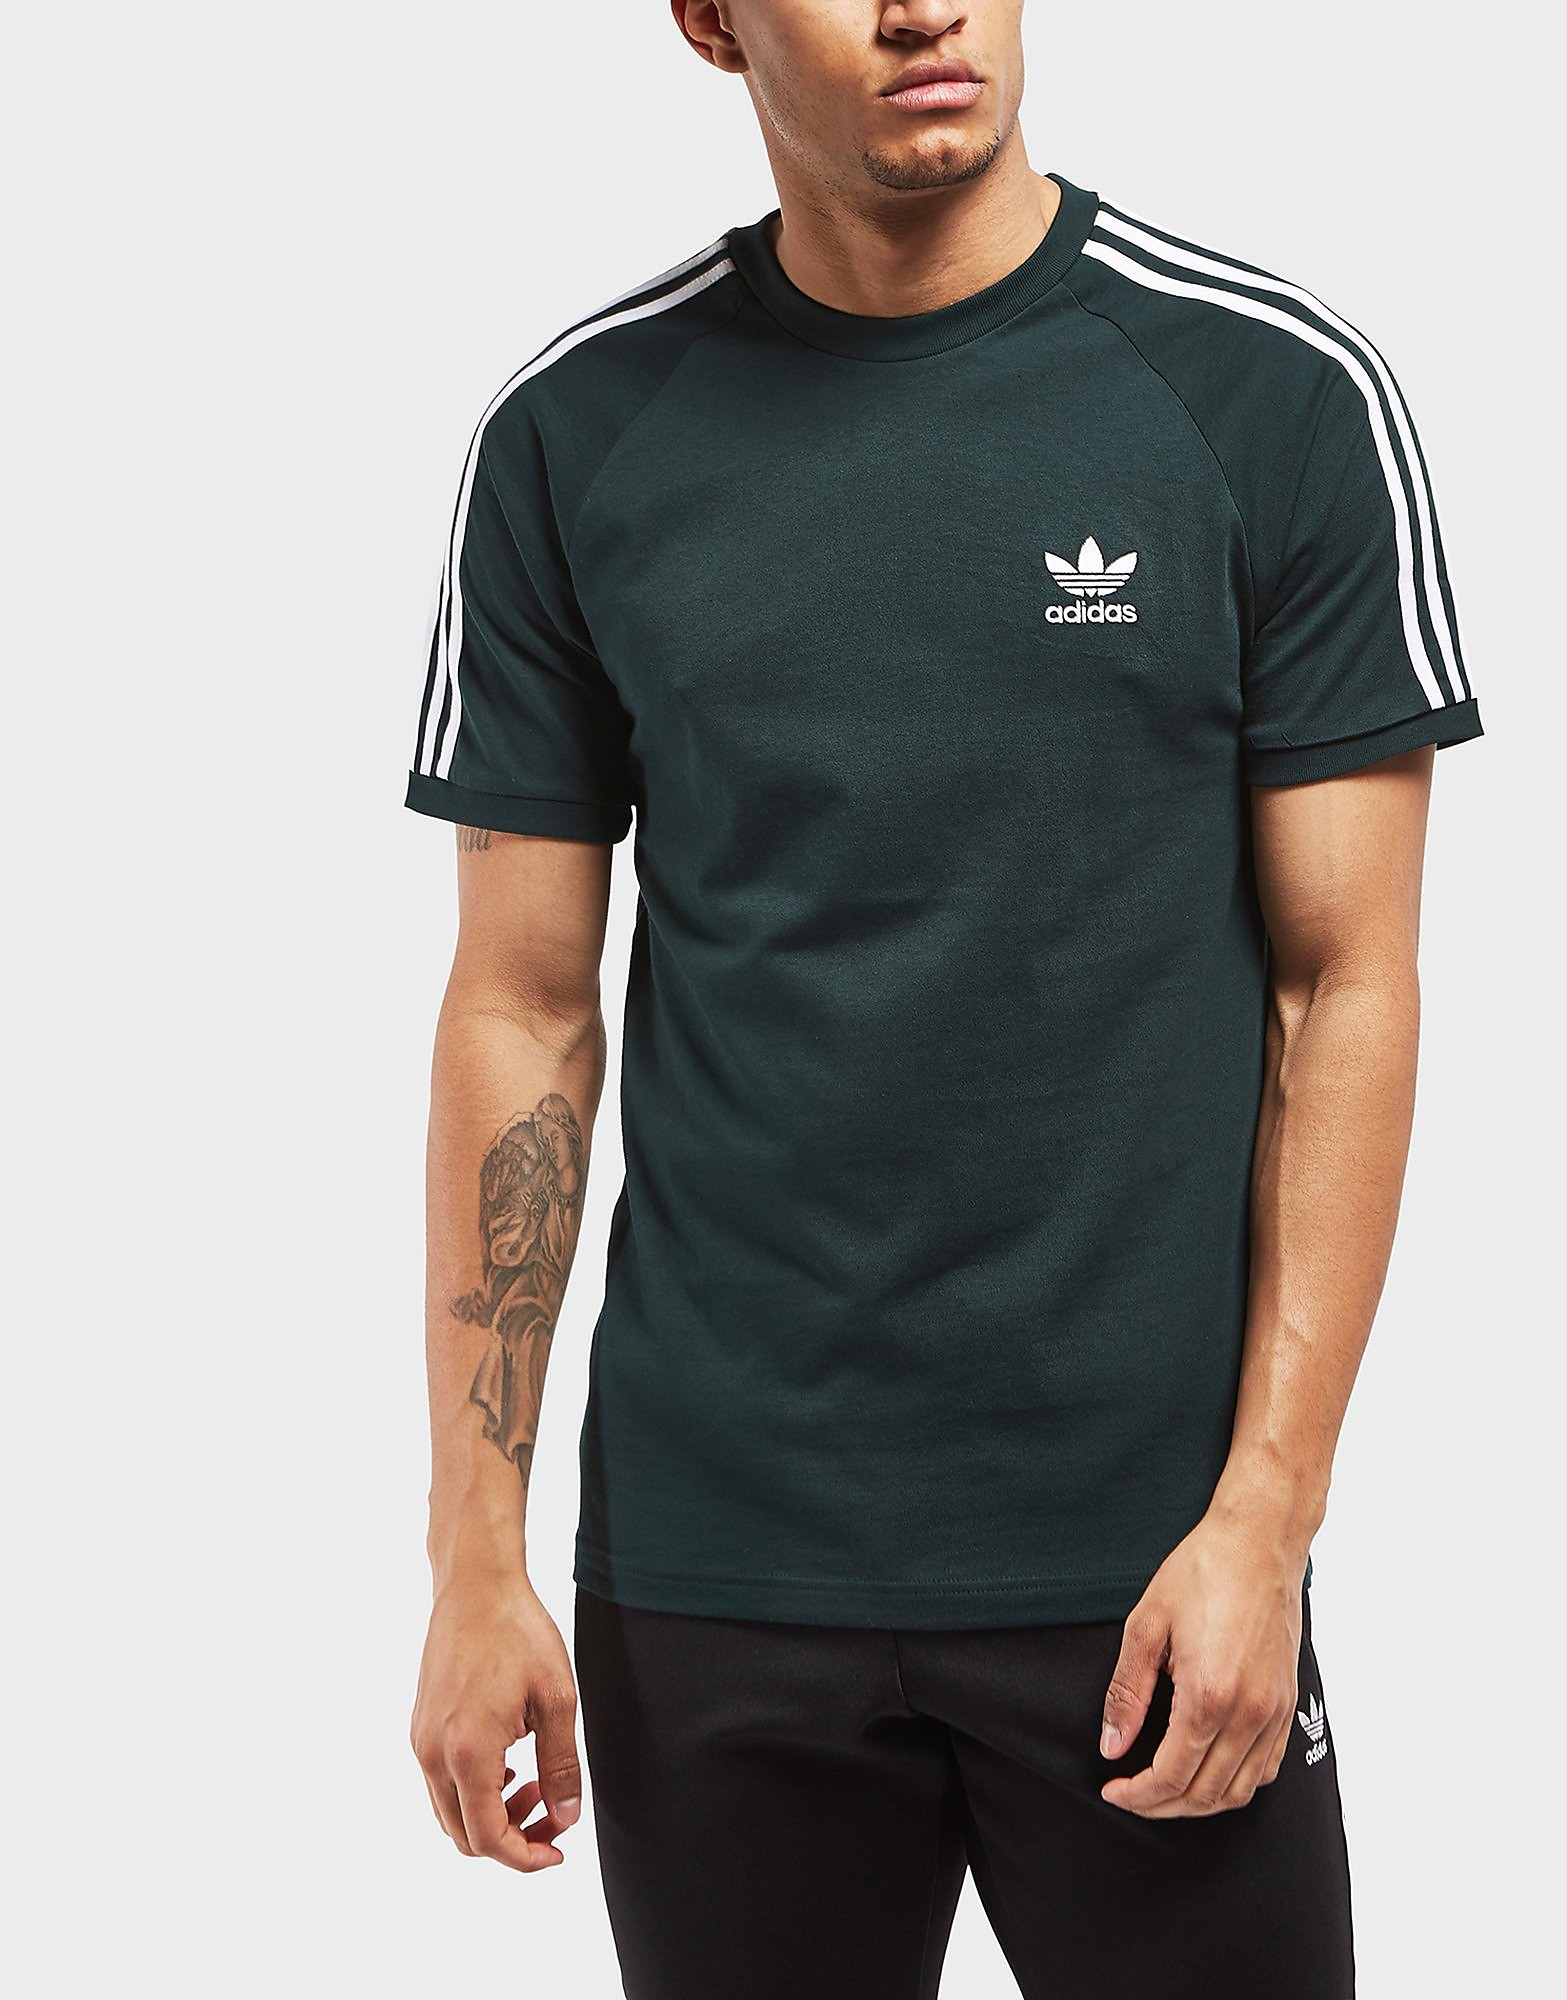 adidas Originals 3-Stripes Short Sleeve T-Shirt